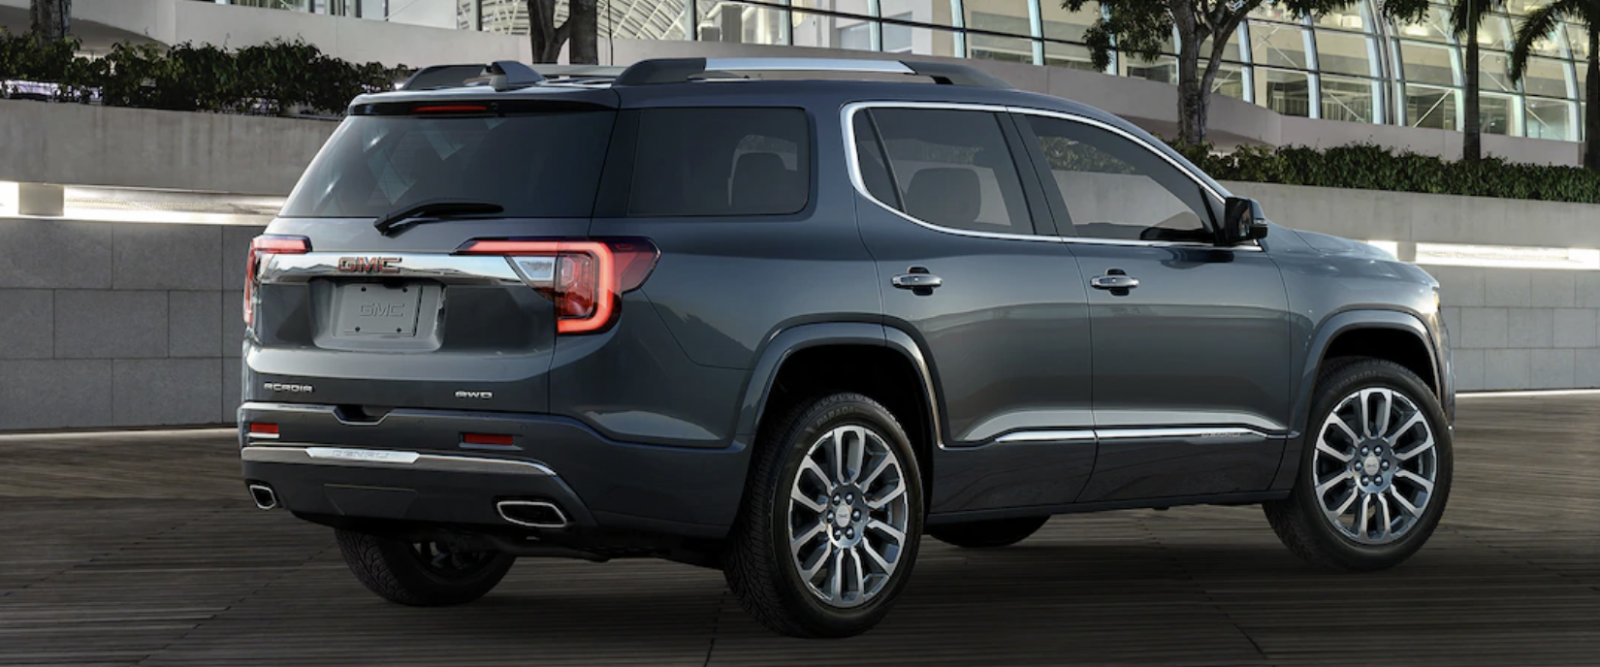 2020 Gmc Acadia Sl In 2020 Acadia Denali Best Rated Suv Gmc